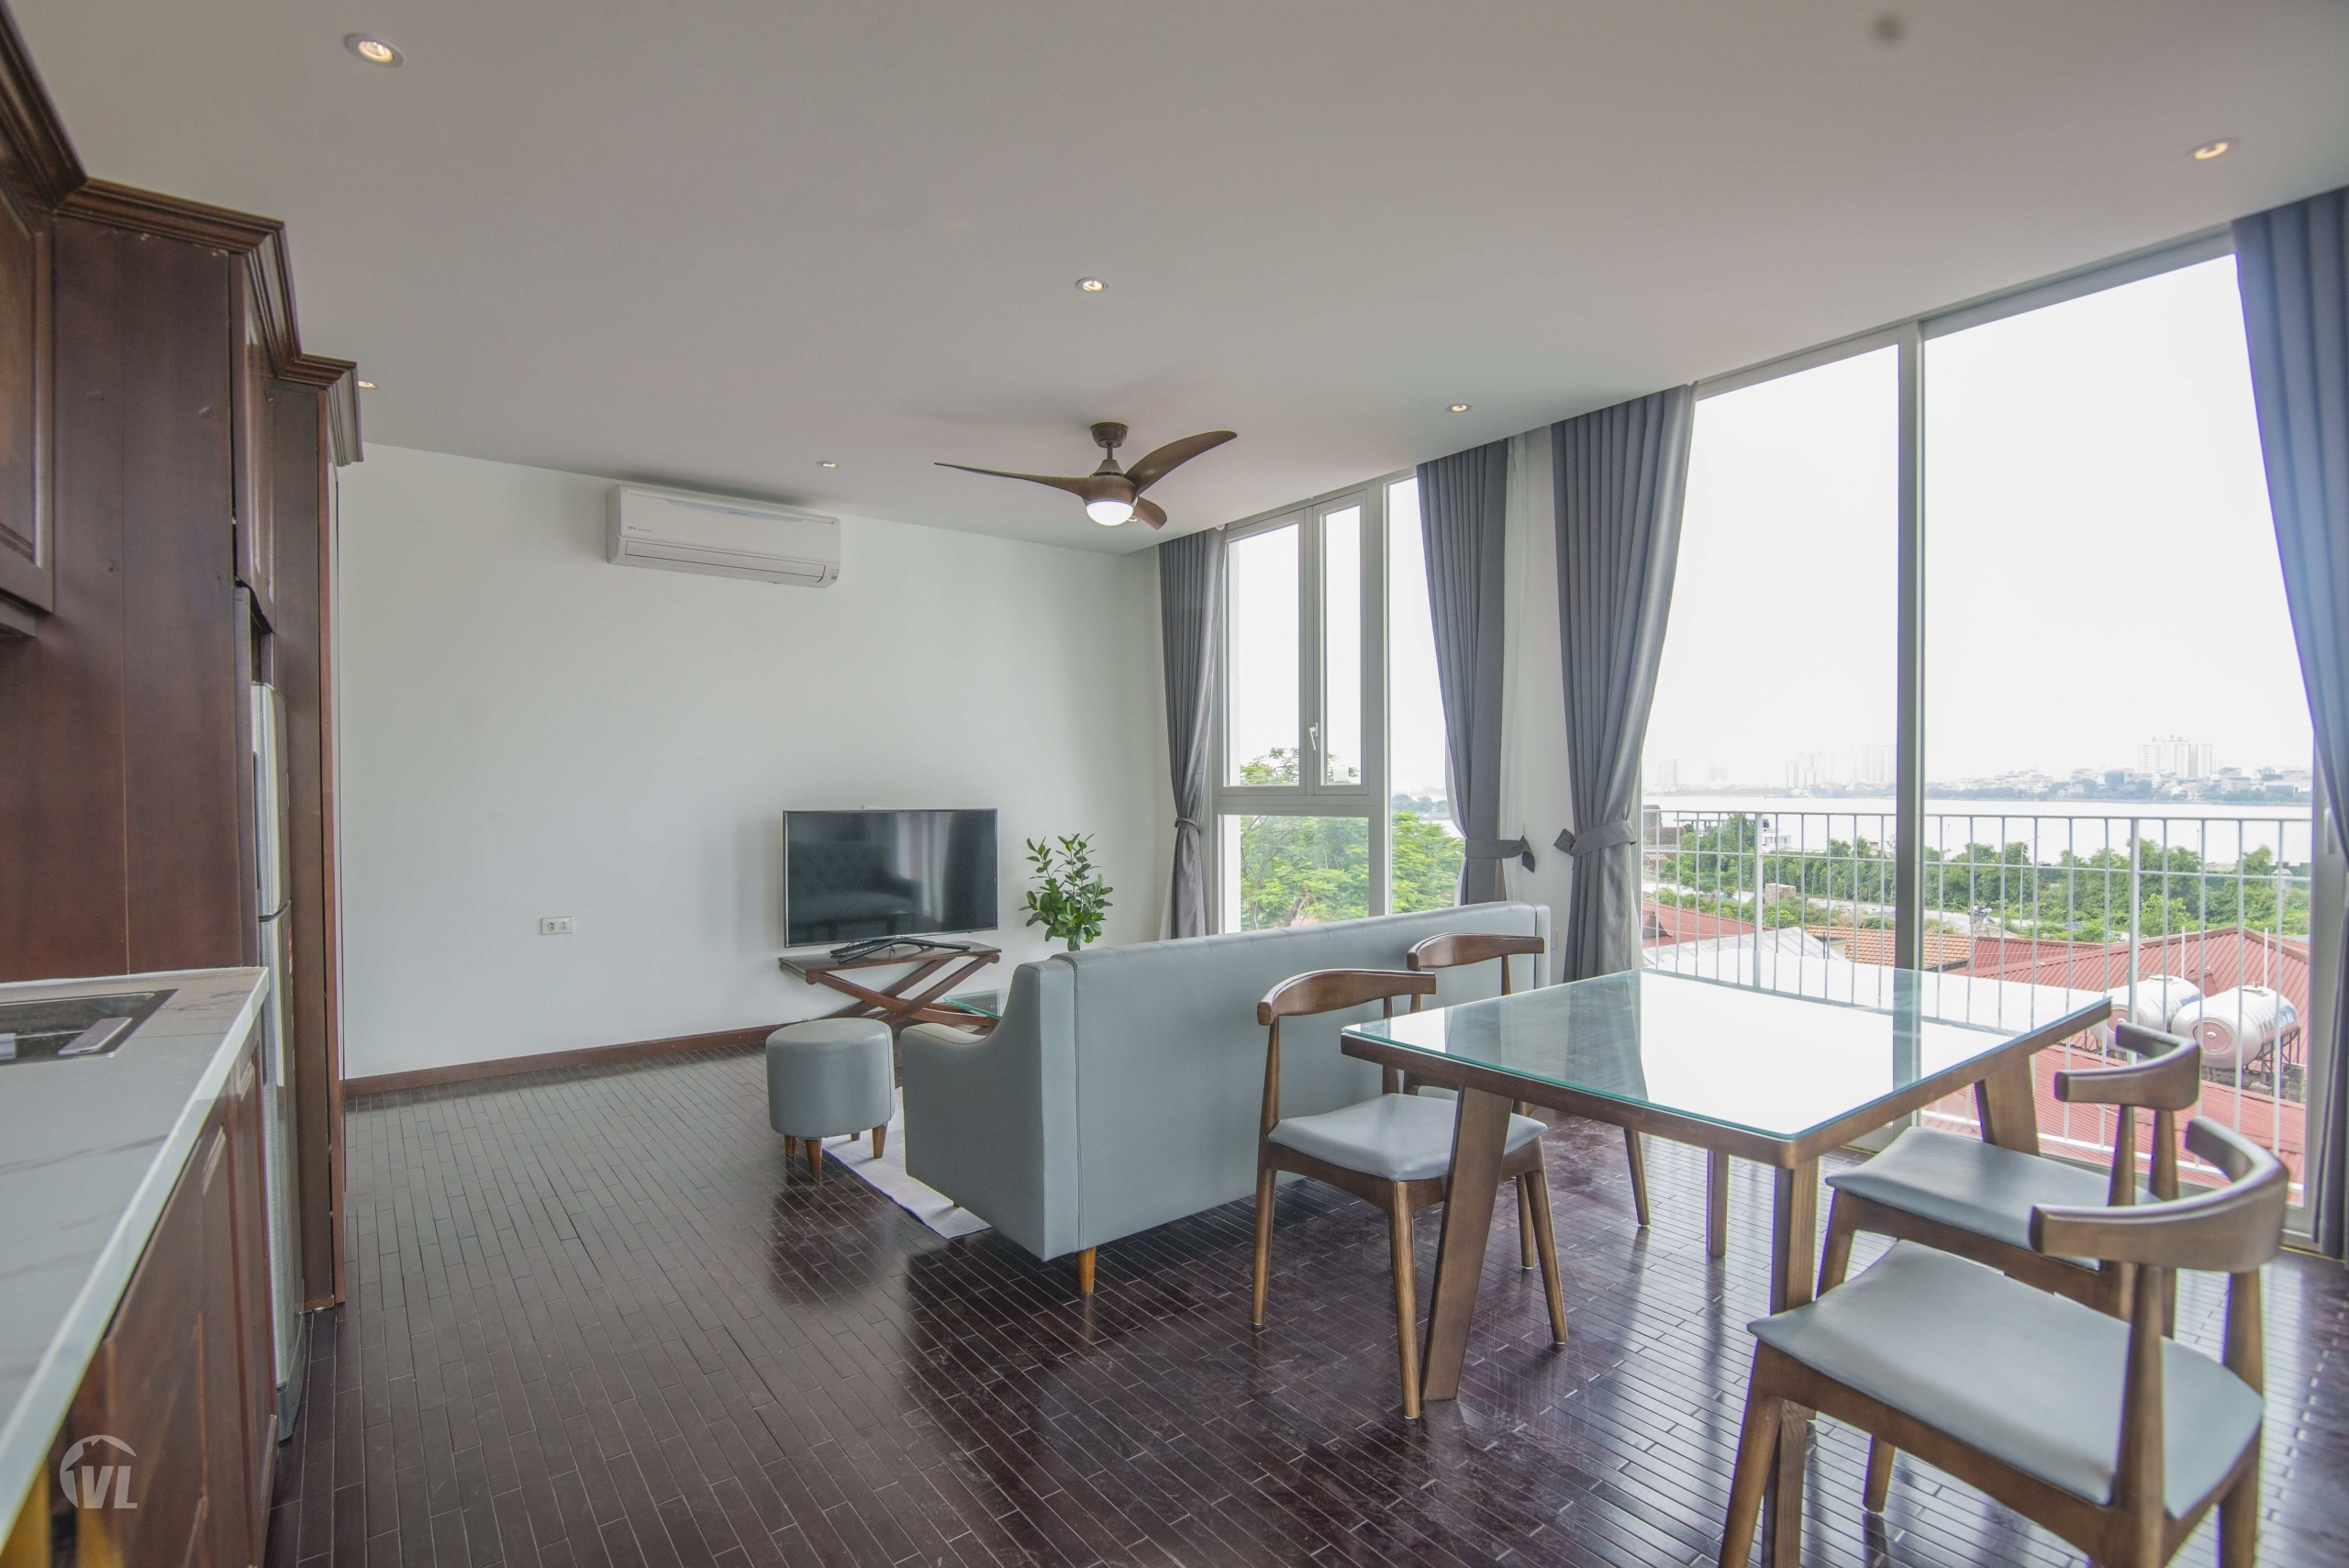 222 Brand-new 2 bedroom apartment in Tay Ho with lake view